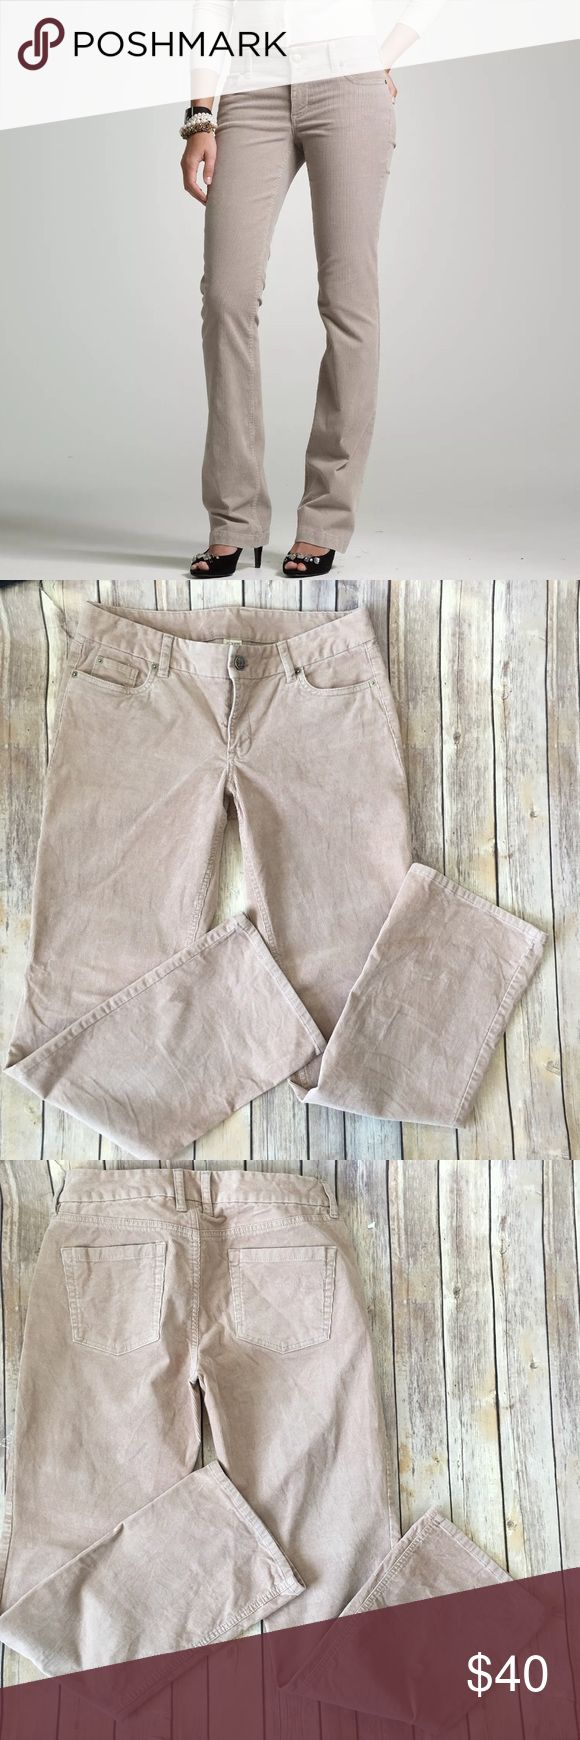 "J.Crew Favorite Fit Boot Cut Stretch Cords Pants Tag Size - 8 Waist Measured Across - 16.5"" Inseam - 32"" Rise - 9"" Great used condition! Always open to reasonable offers! J. Crew Pants Boot Cut & Flare"